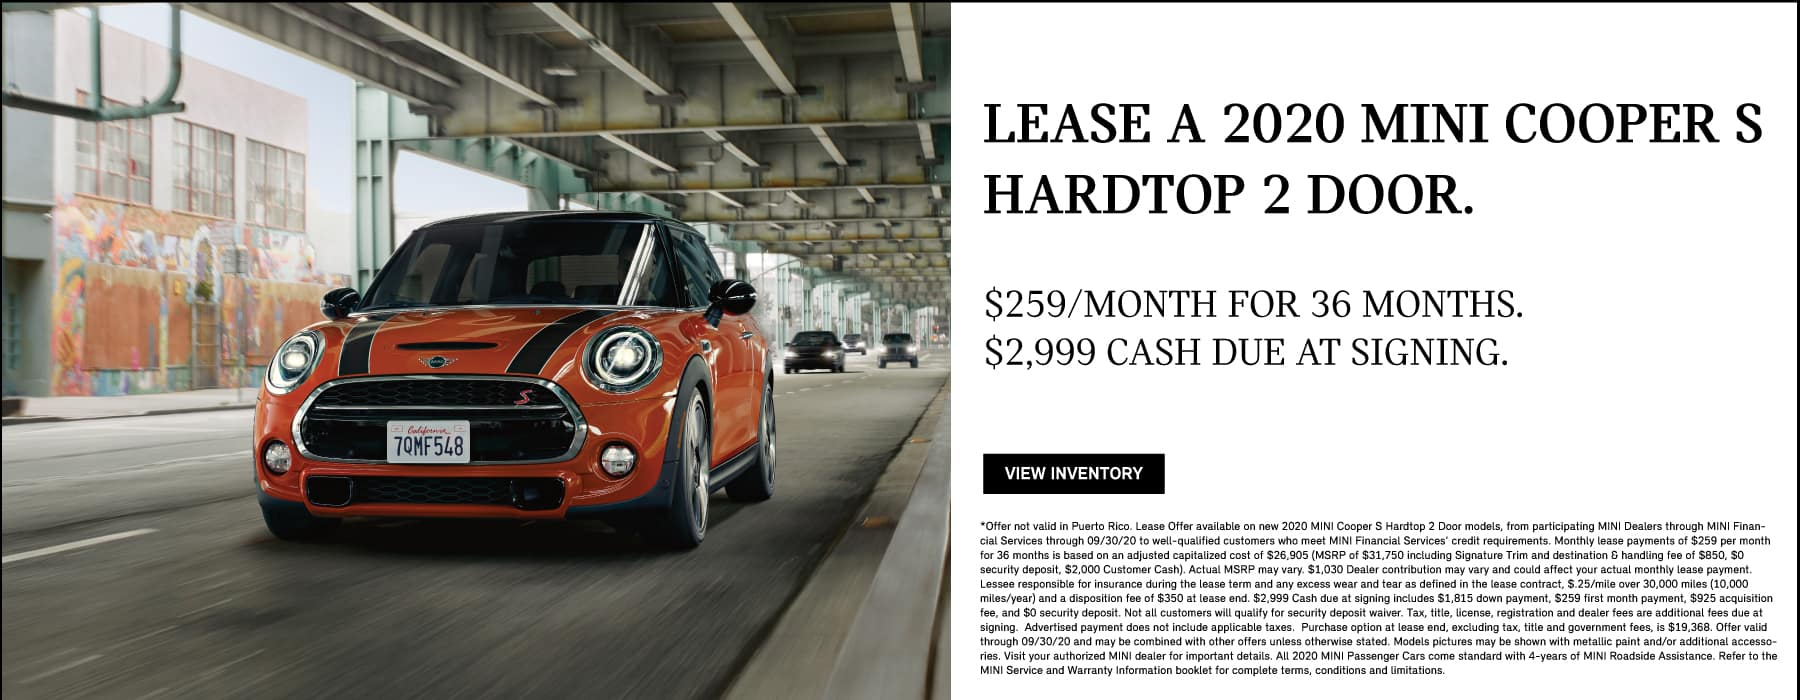 Lease a 2020 MINI Cooper S Hardtop 2 Door for $259/month and $2,999 Cash due at signing through 9/30/20. View Inventory